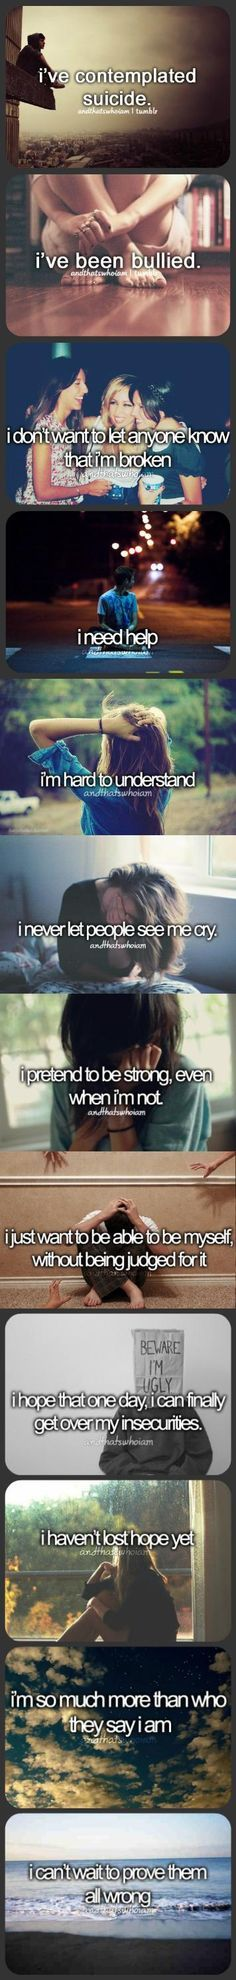 That's me. Real me.